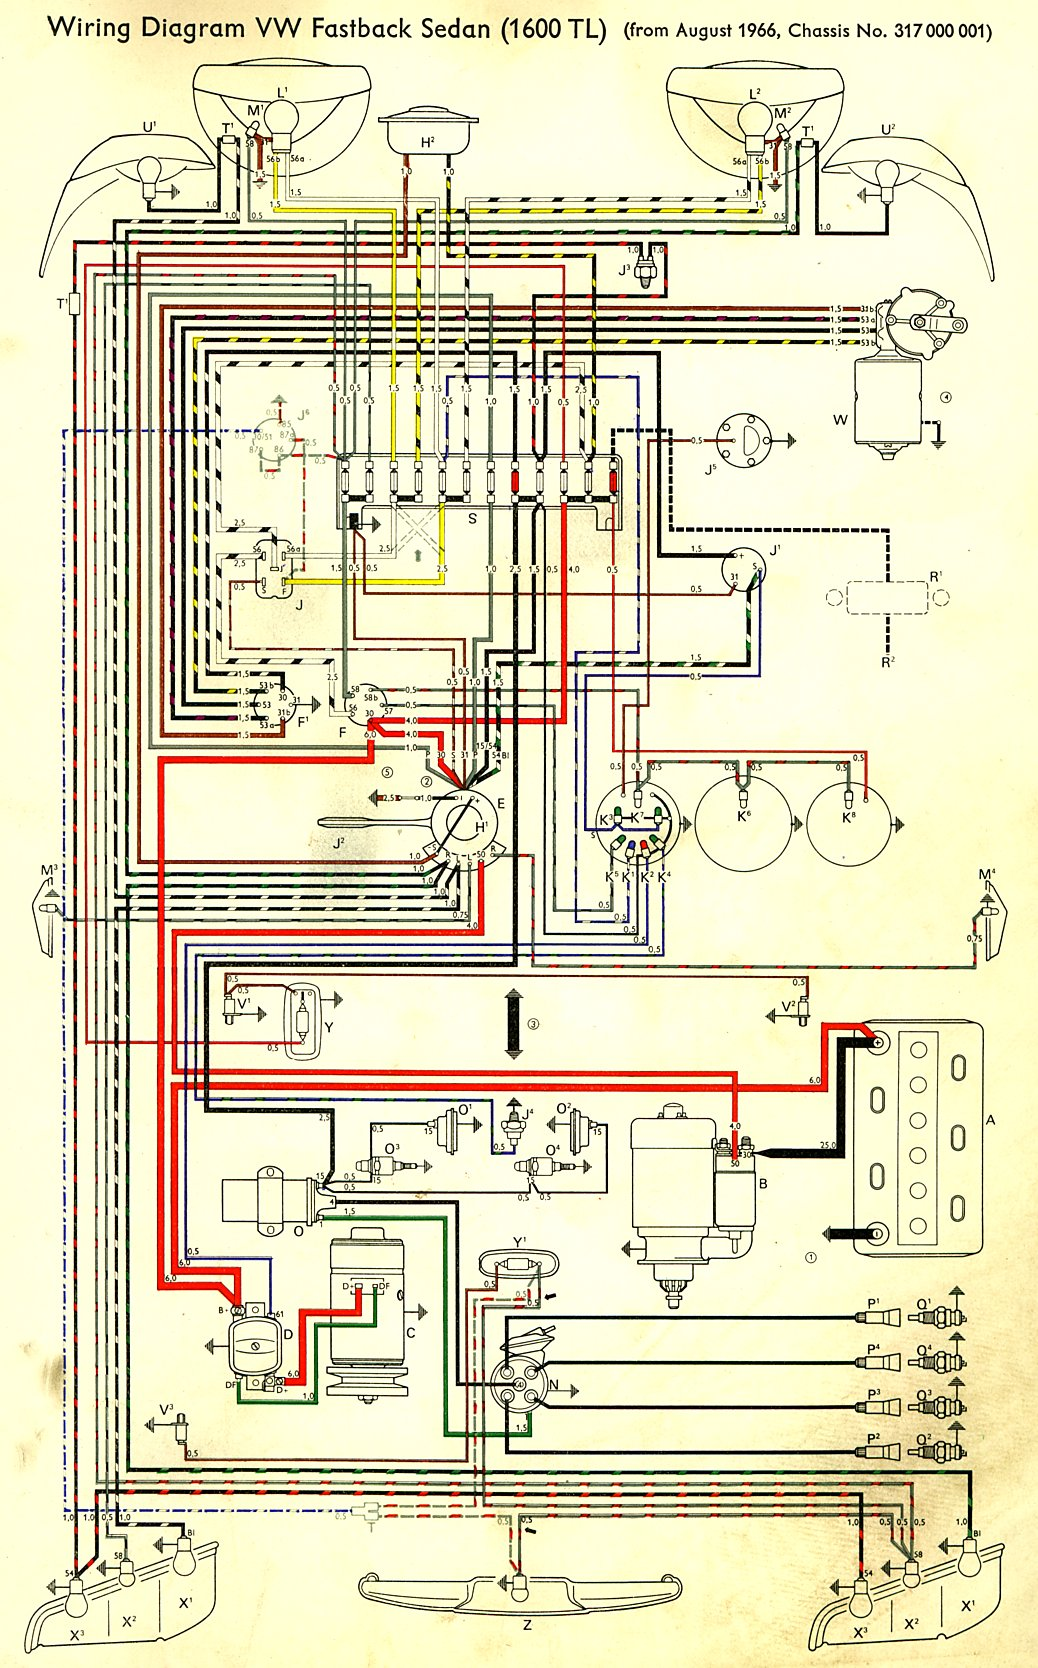 1963 Vw Bug Wiring Diagram Dom Gmc 1966 Beetle Harness